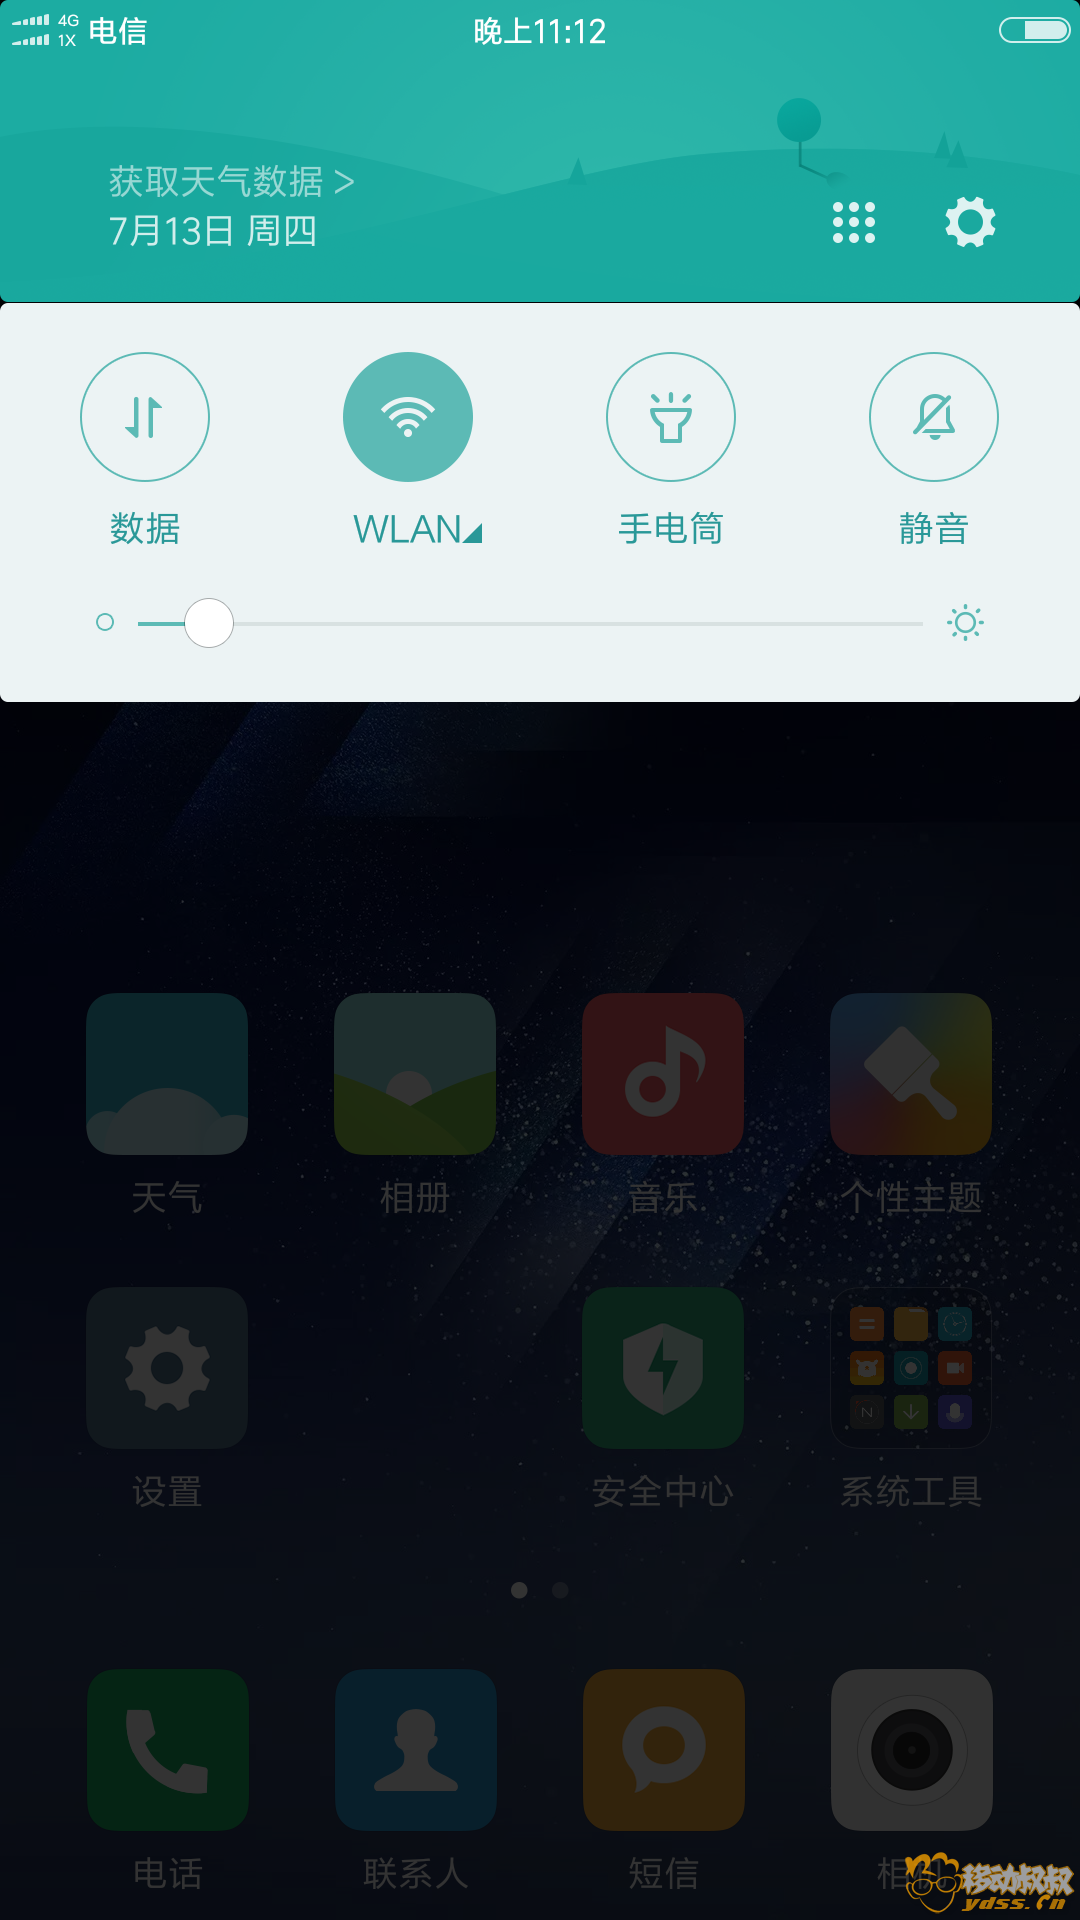 Screenshot_2017-07-13-23-12-44-041_com.miui.home.png